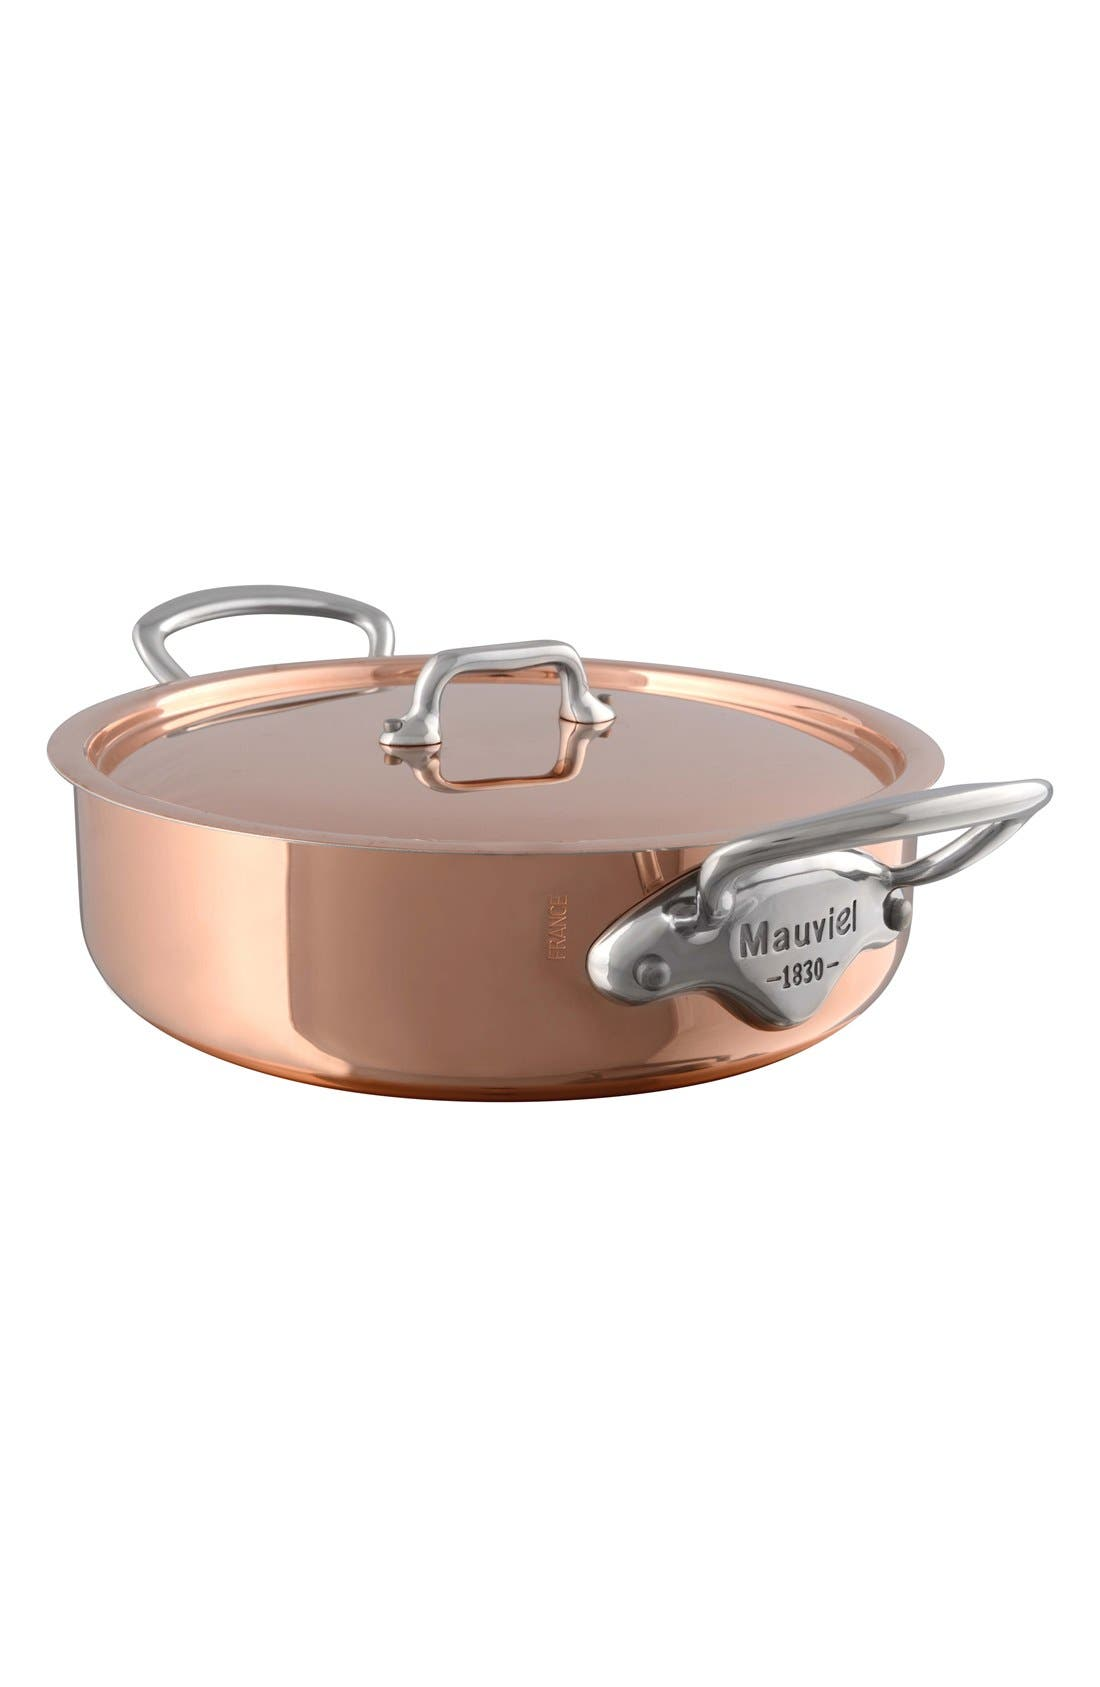 Alternate Image 2  - Mauviel M'héritage - M'150s Copper & Stainless Steel Rondeau with Lid